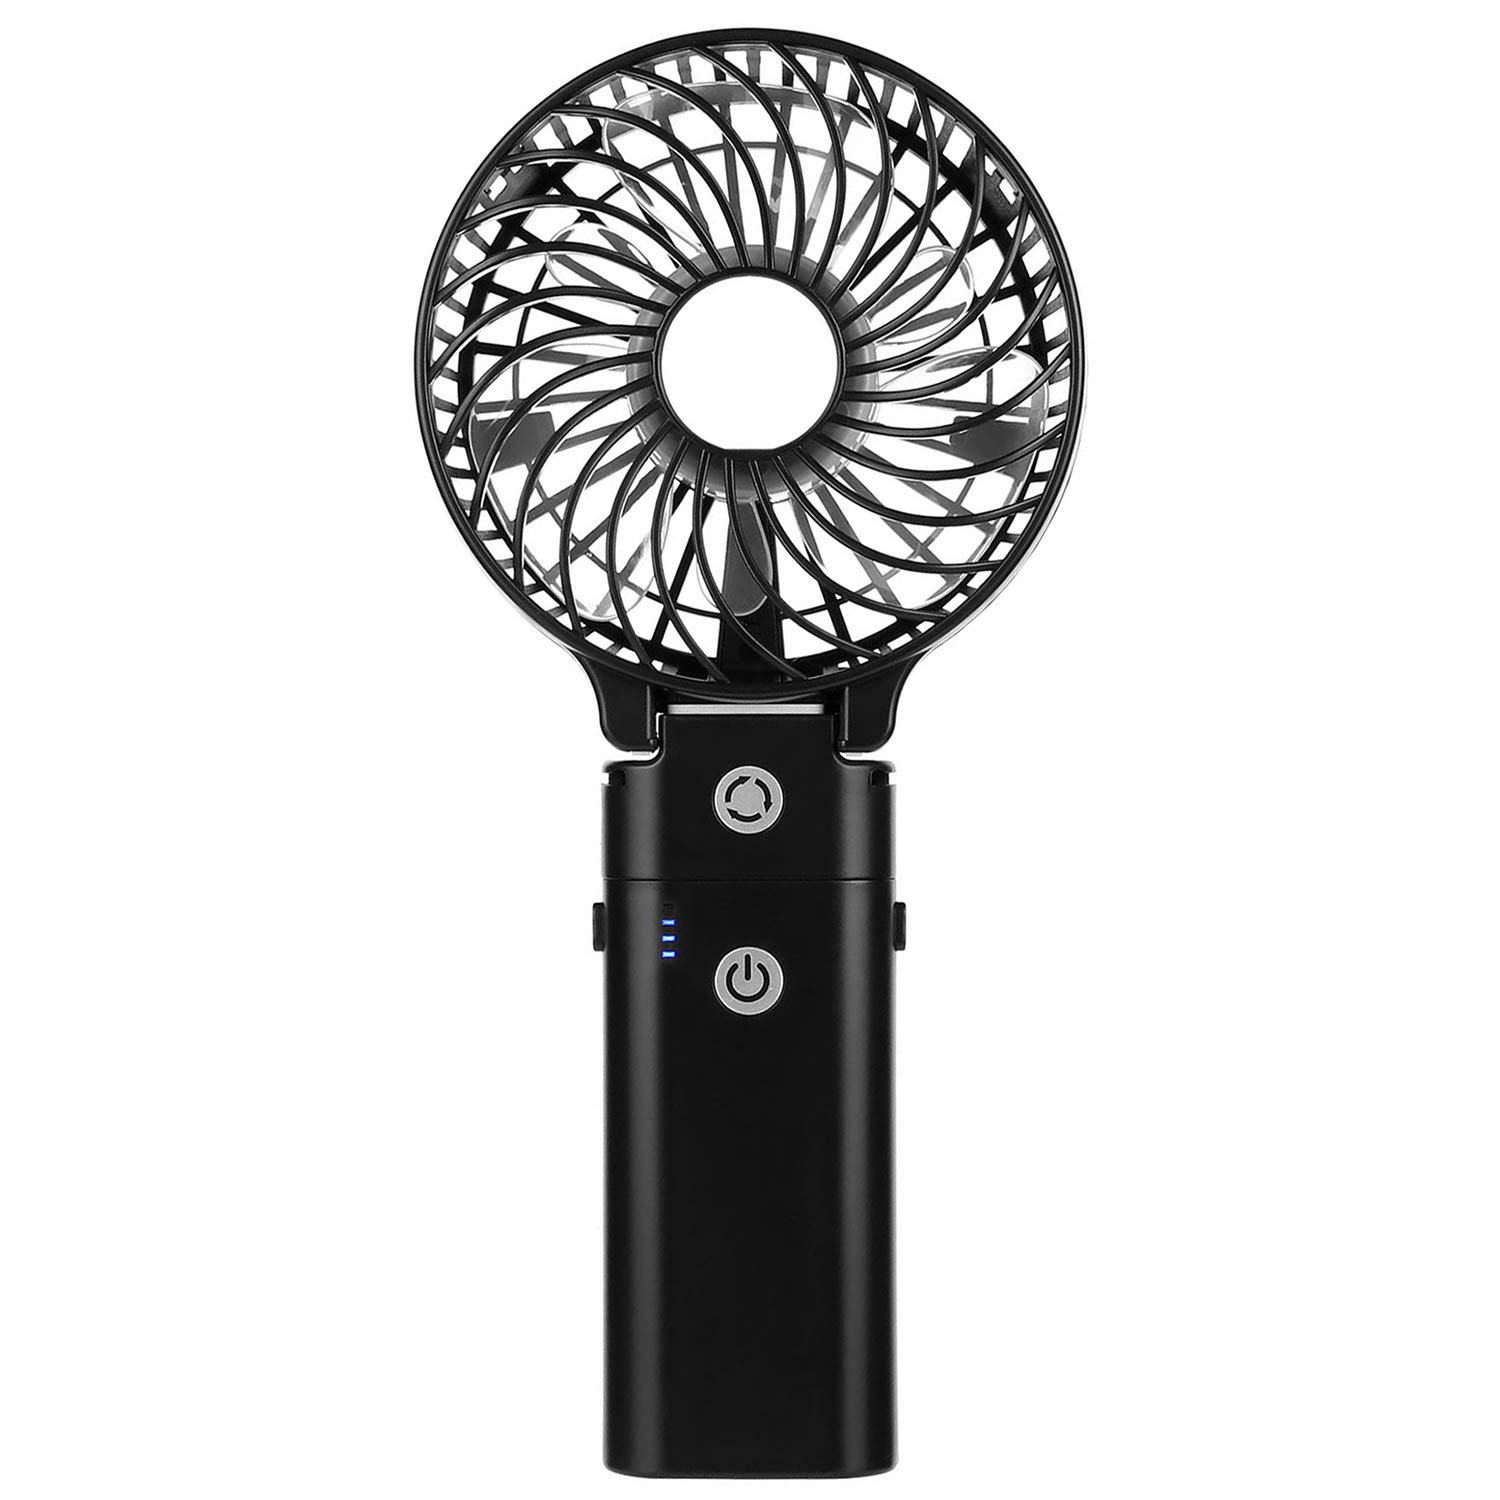 COMLIFE Handheld Fan with 5200mAh Power Bank, Portable Battery Powered Fan with 5-20H Working Time, 3 Speeds, Strong Airflow, Lightweight & Foldable Design, for Indoor and Outdoor Usage(Black) by COMLIFE